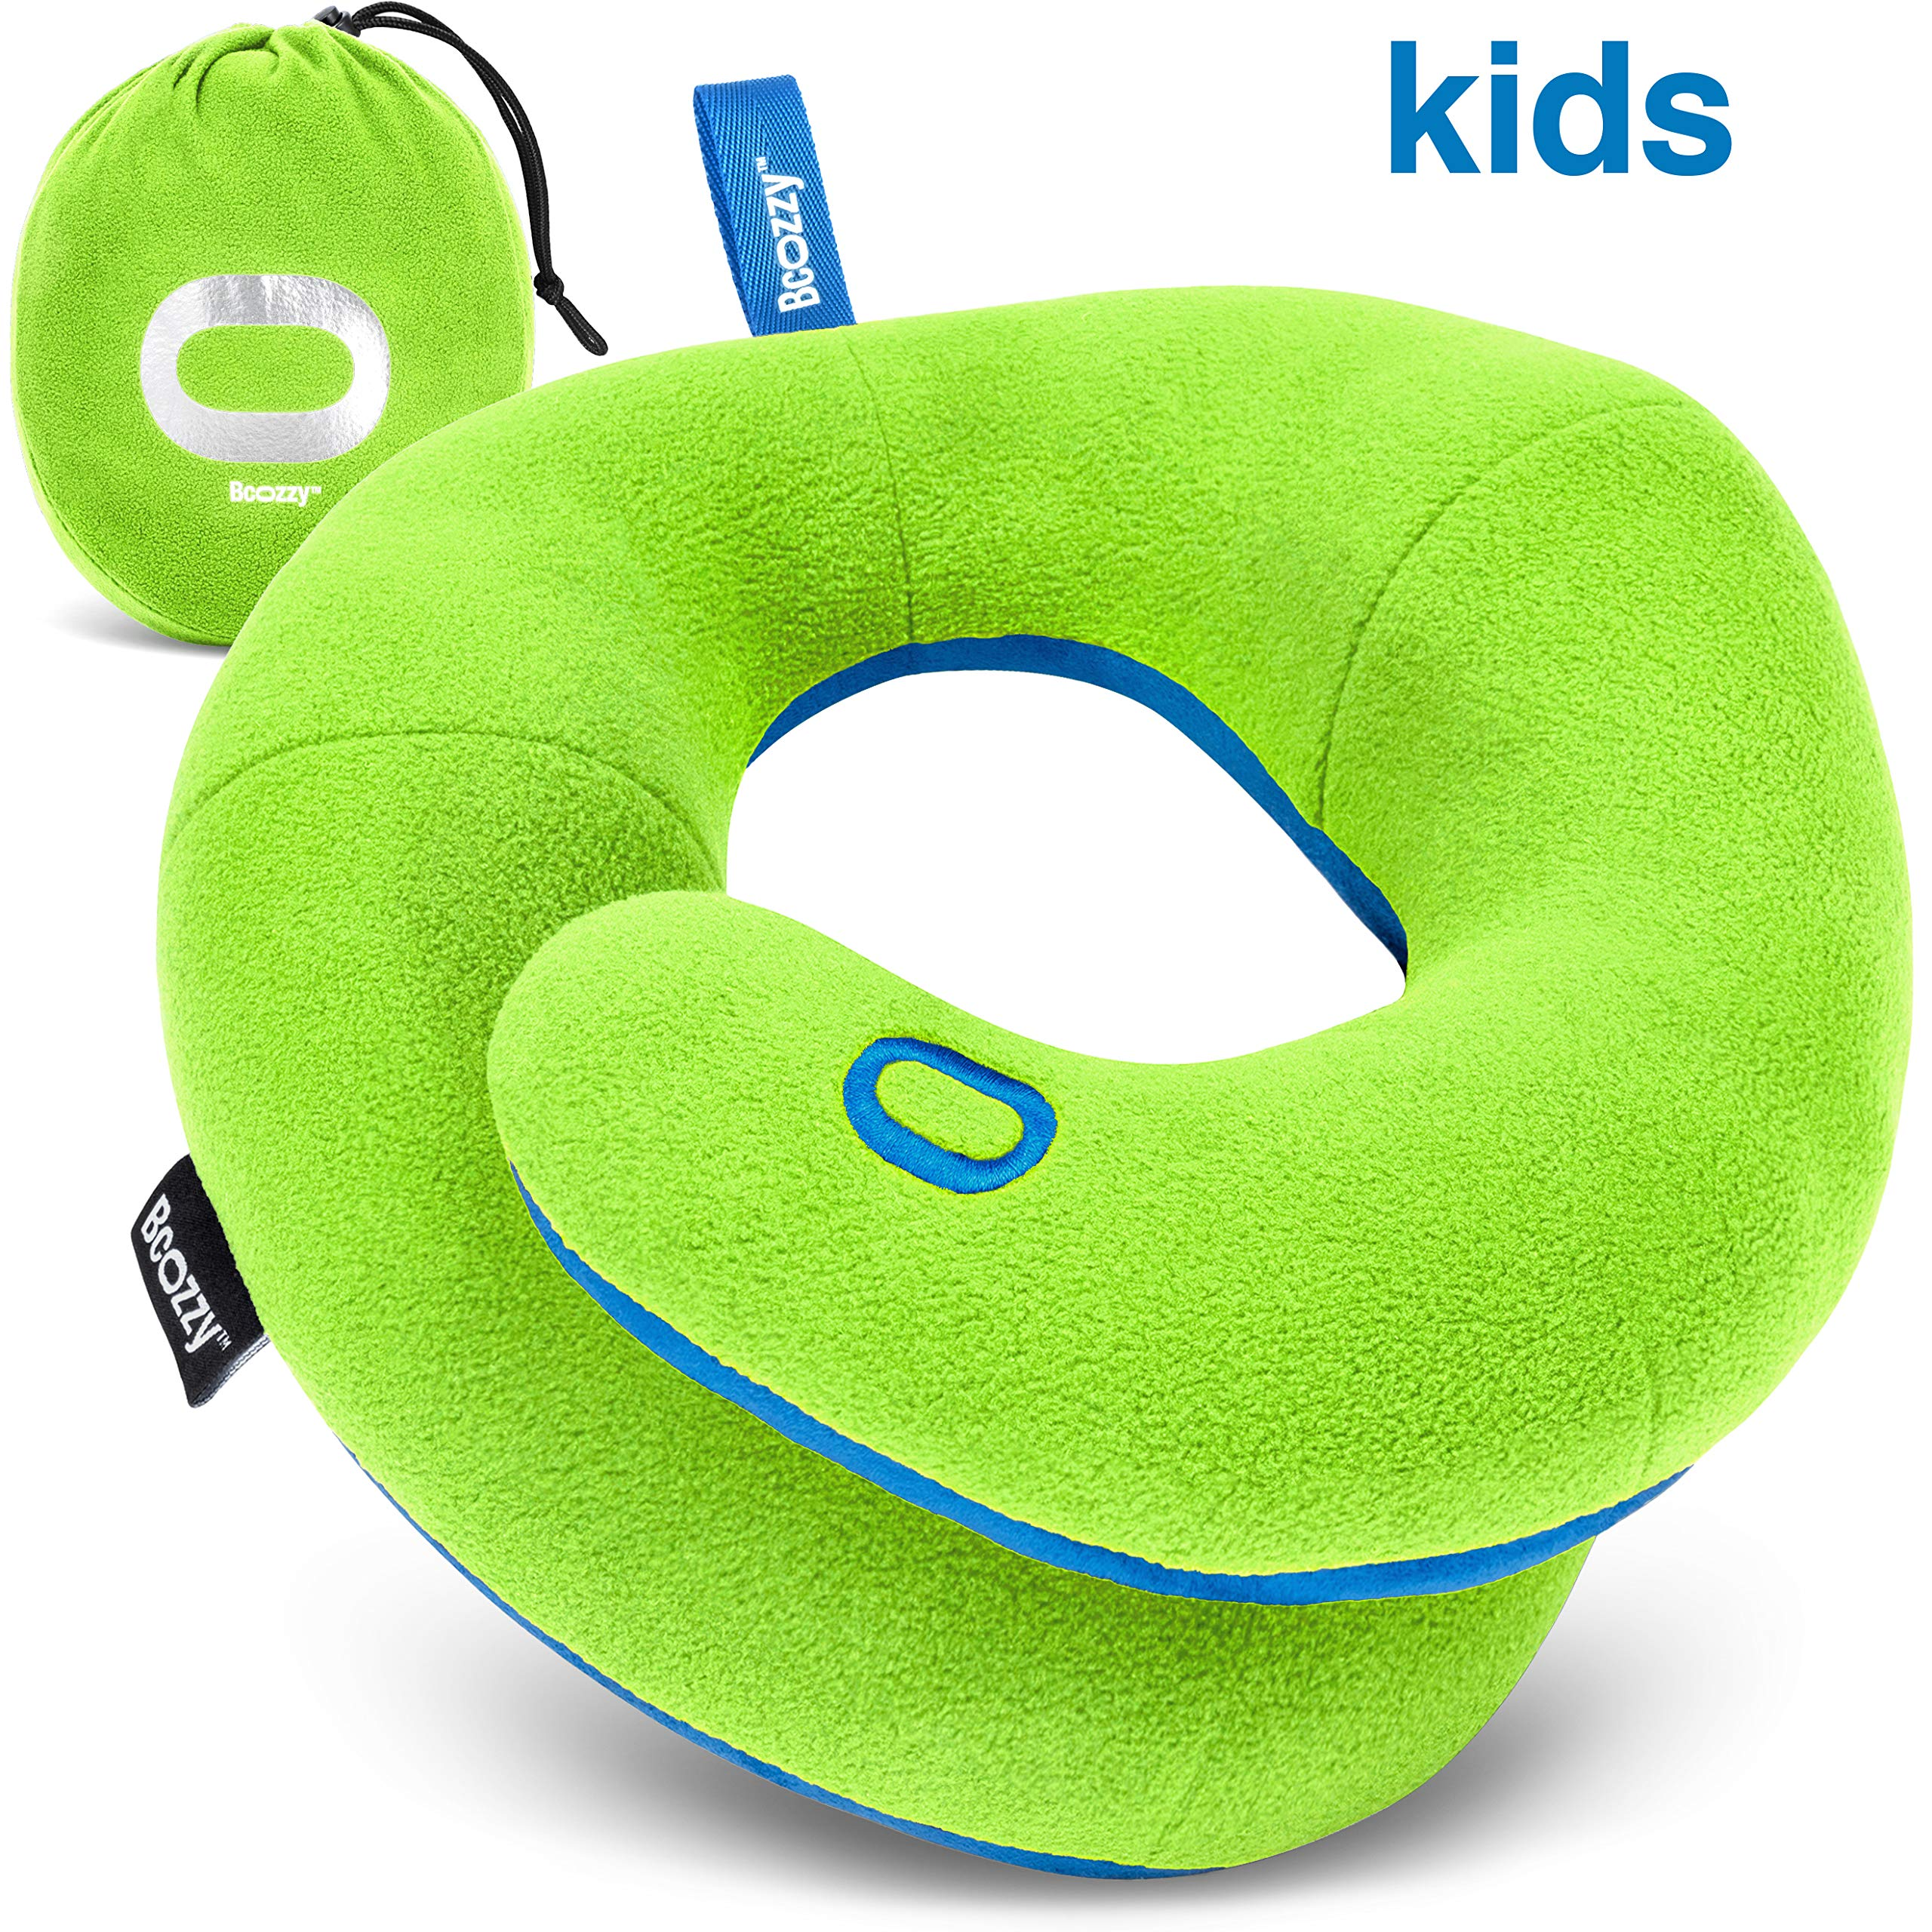 BCOZZY Kids- Travel Pillow- Supports Child's Head, Neck, and Chin While Sleeping in Booster Car-seat. Best Toddler Accessory & Activity for Traveling on Airplane and Road Trips. Green